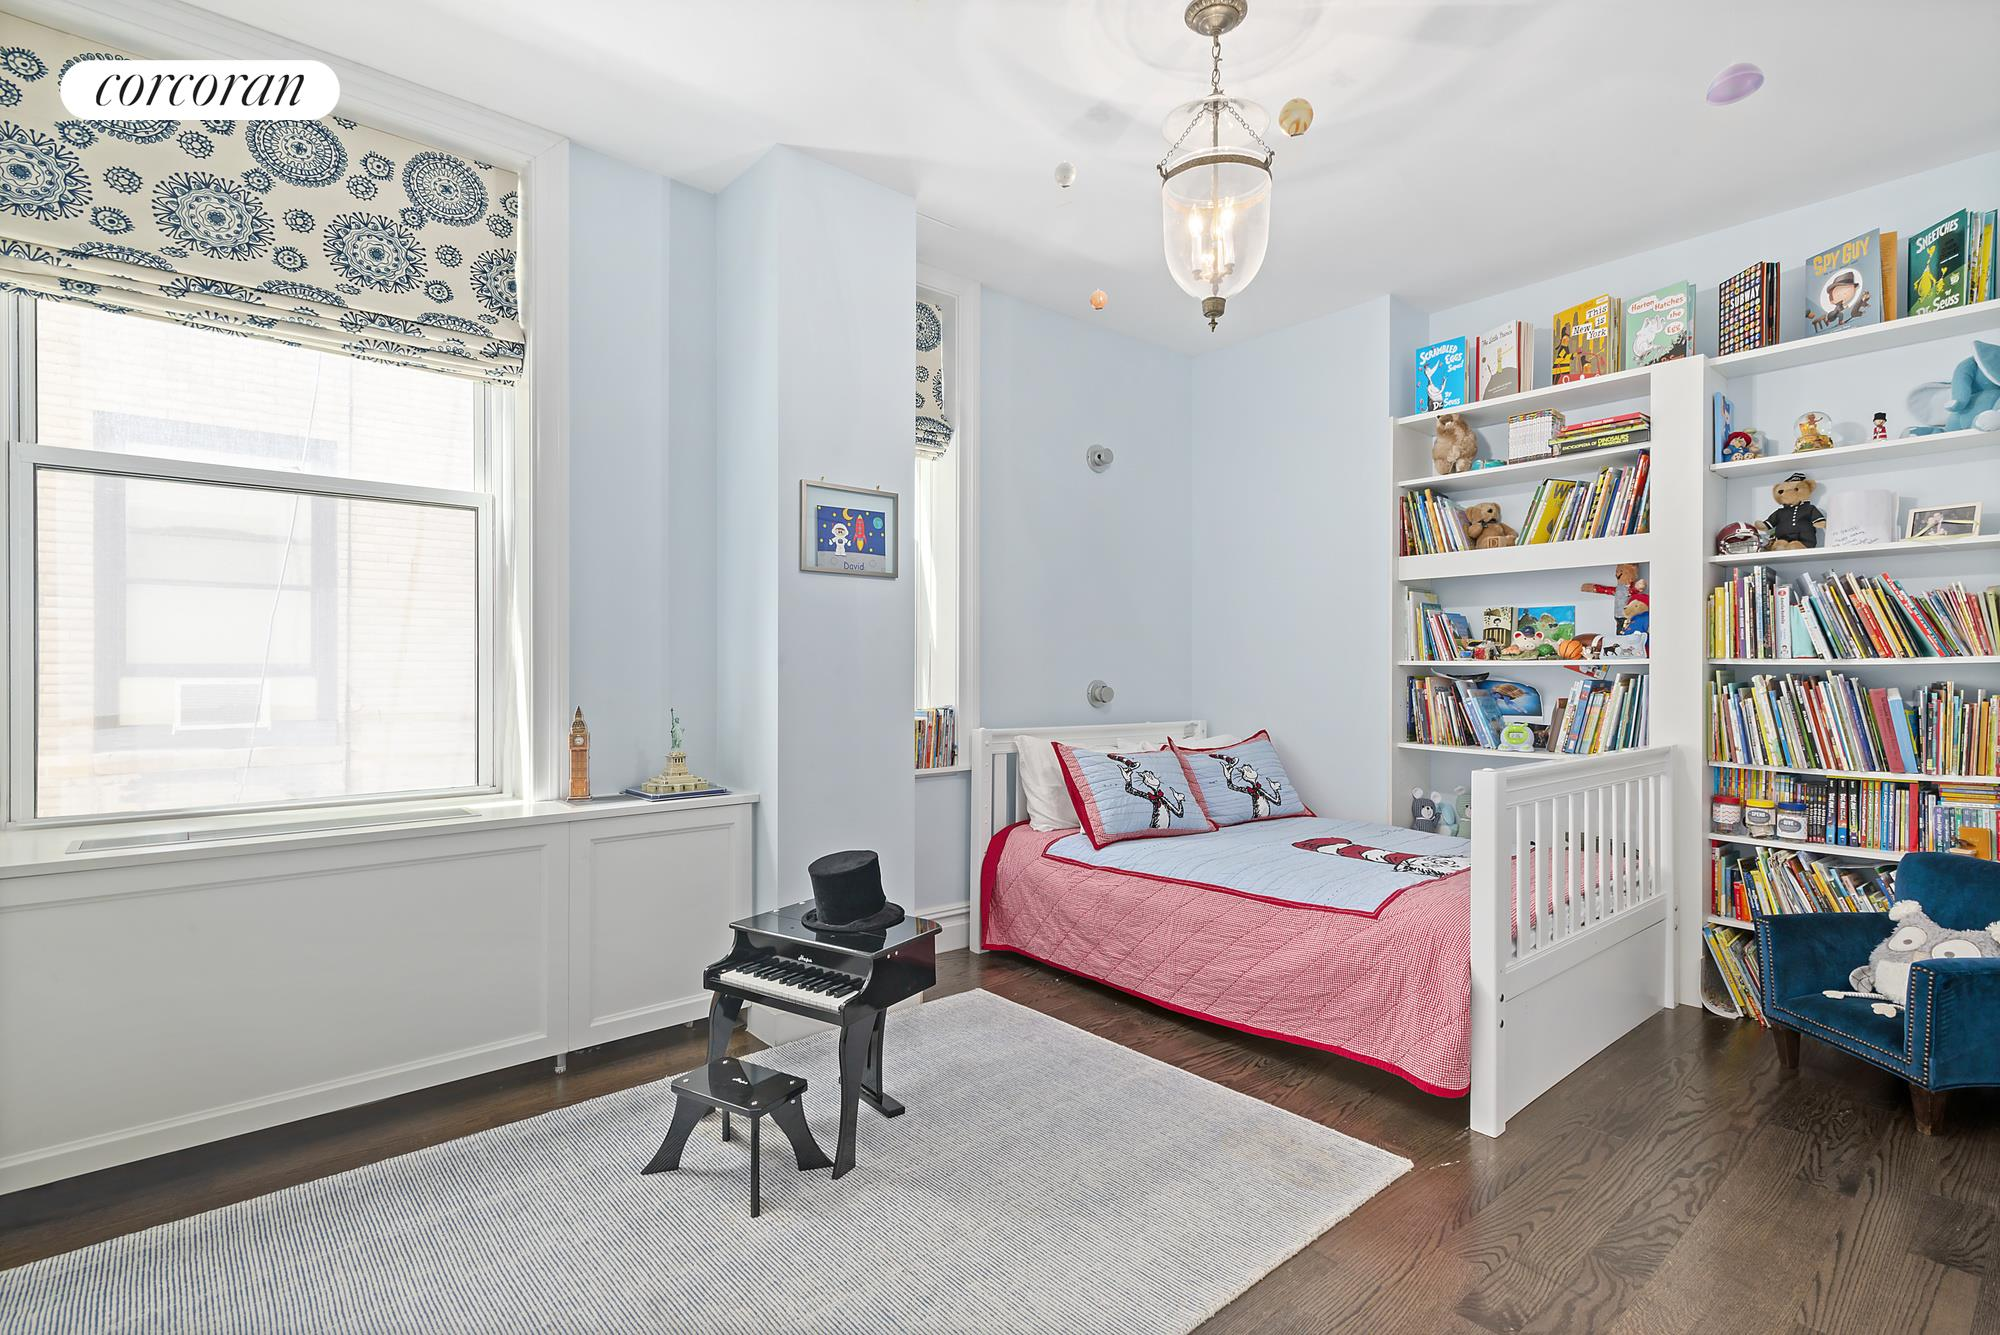 50 West 67th Street, 2G/3GH, Living Room with WBFP